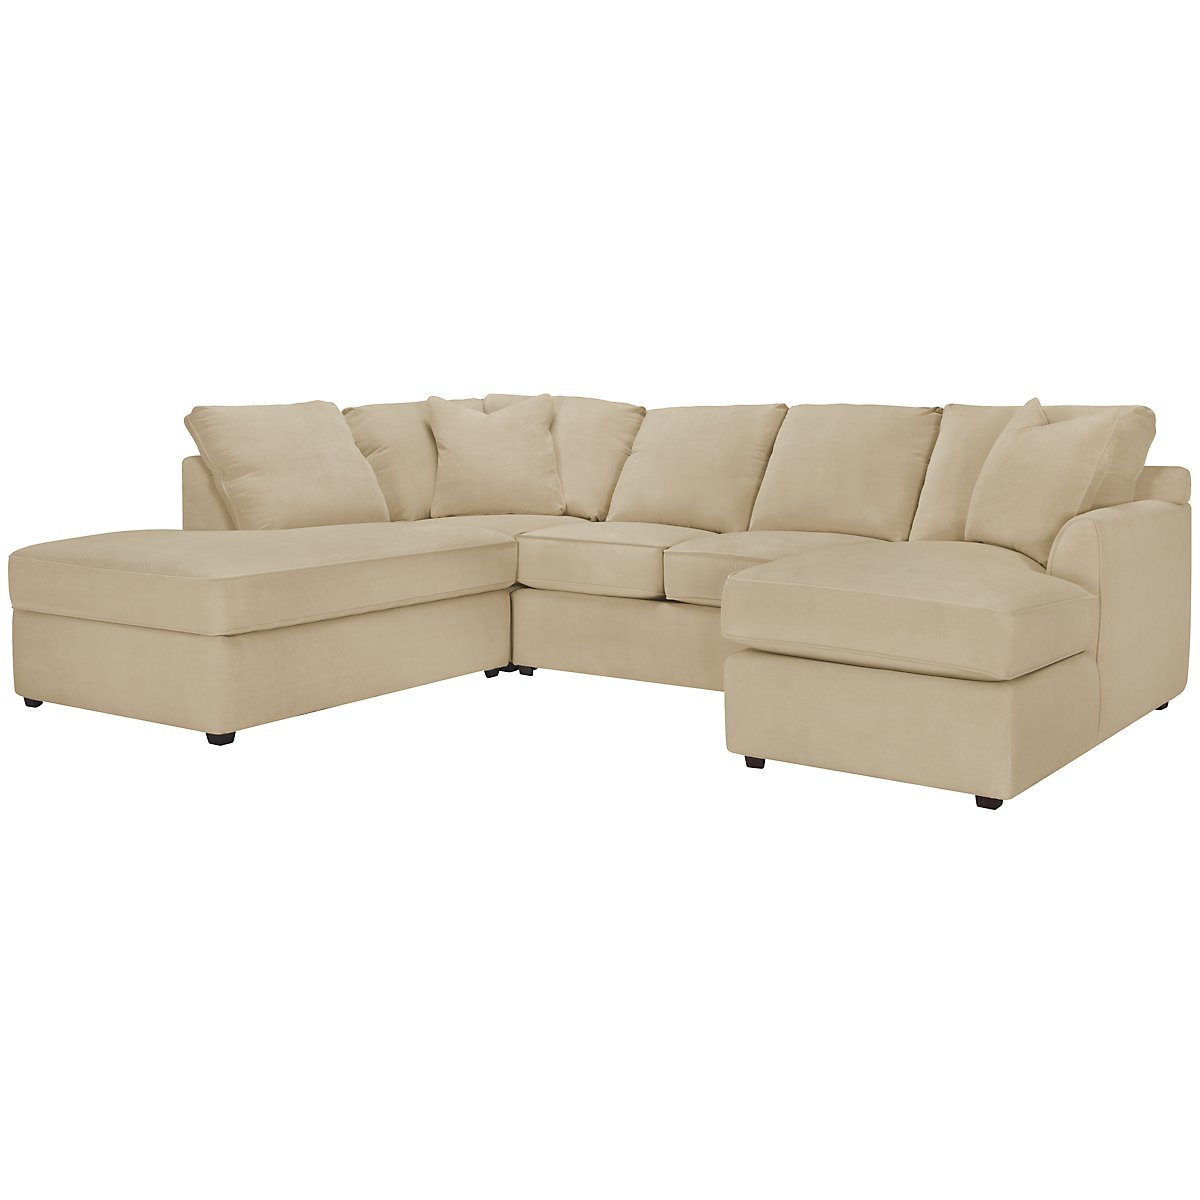 Express3 Light Beige Microfiber Small Left Bumper Sectional